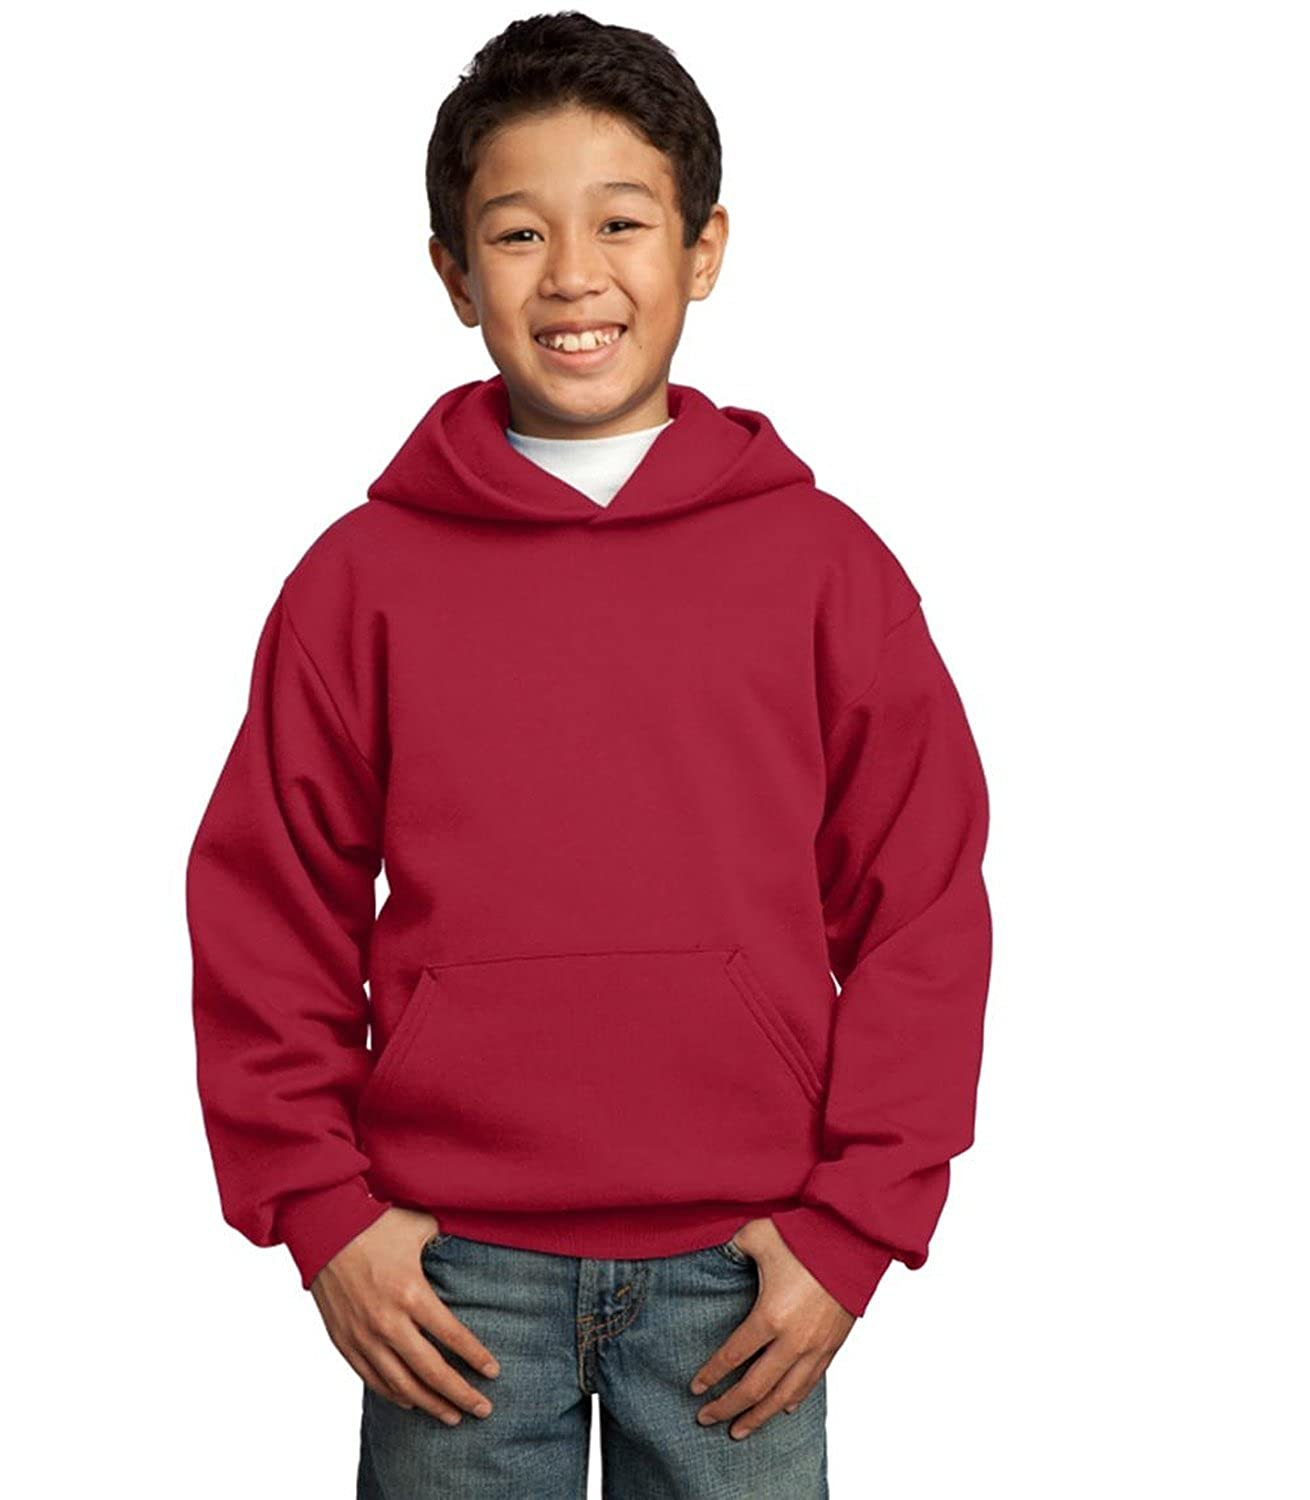 Port /& Company Youth Pullover Hooded Sweatshirt Red Sm